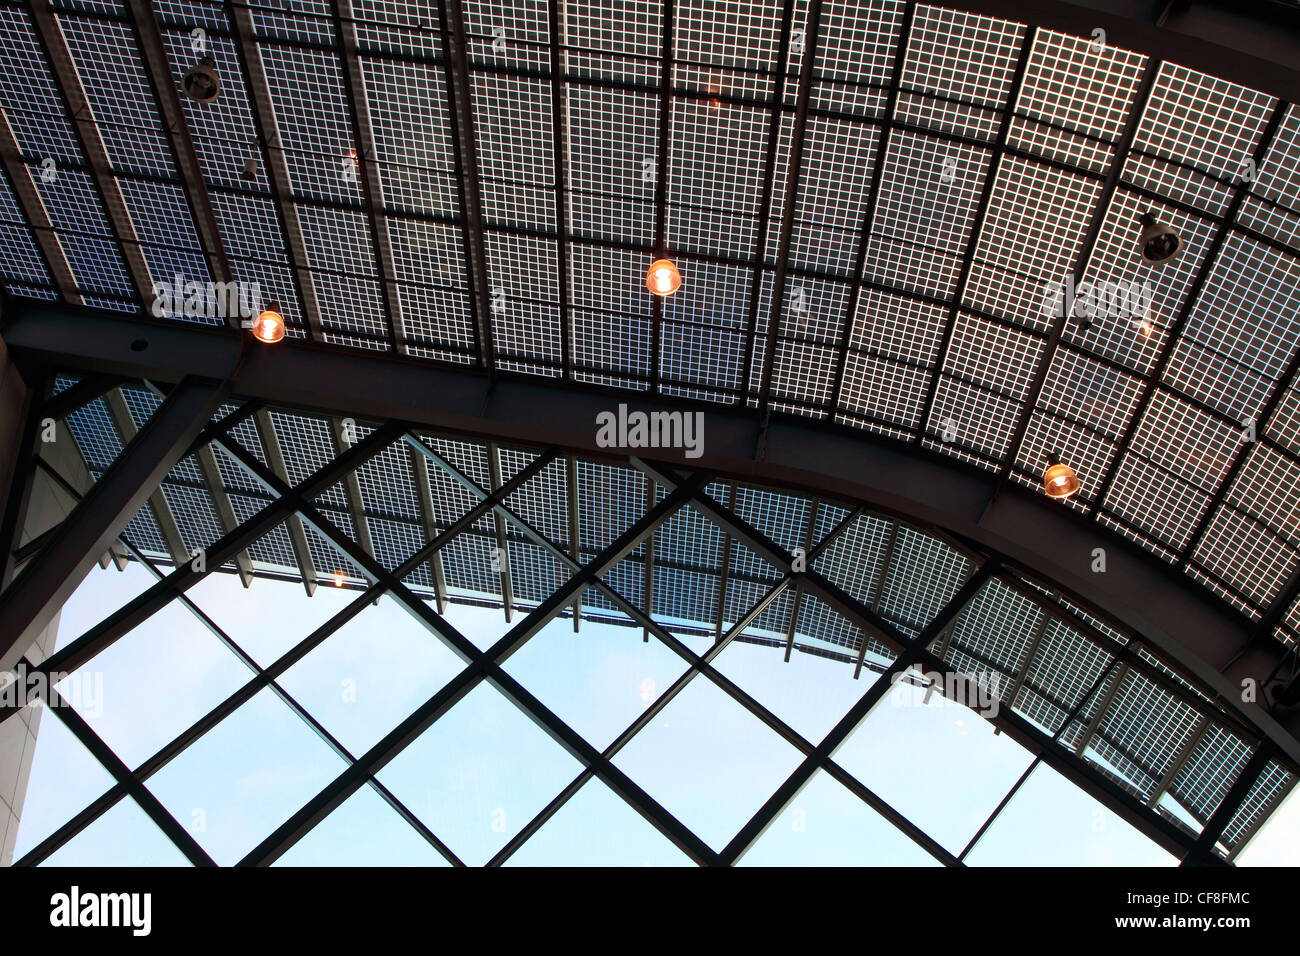 Glass roof of Messe-Essen, fairground. Solar panels are included in the glass tiles to generate solar power energy. - Stock Image